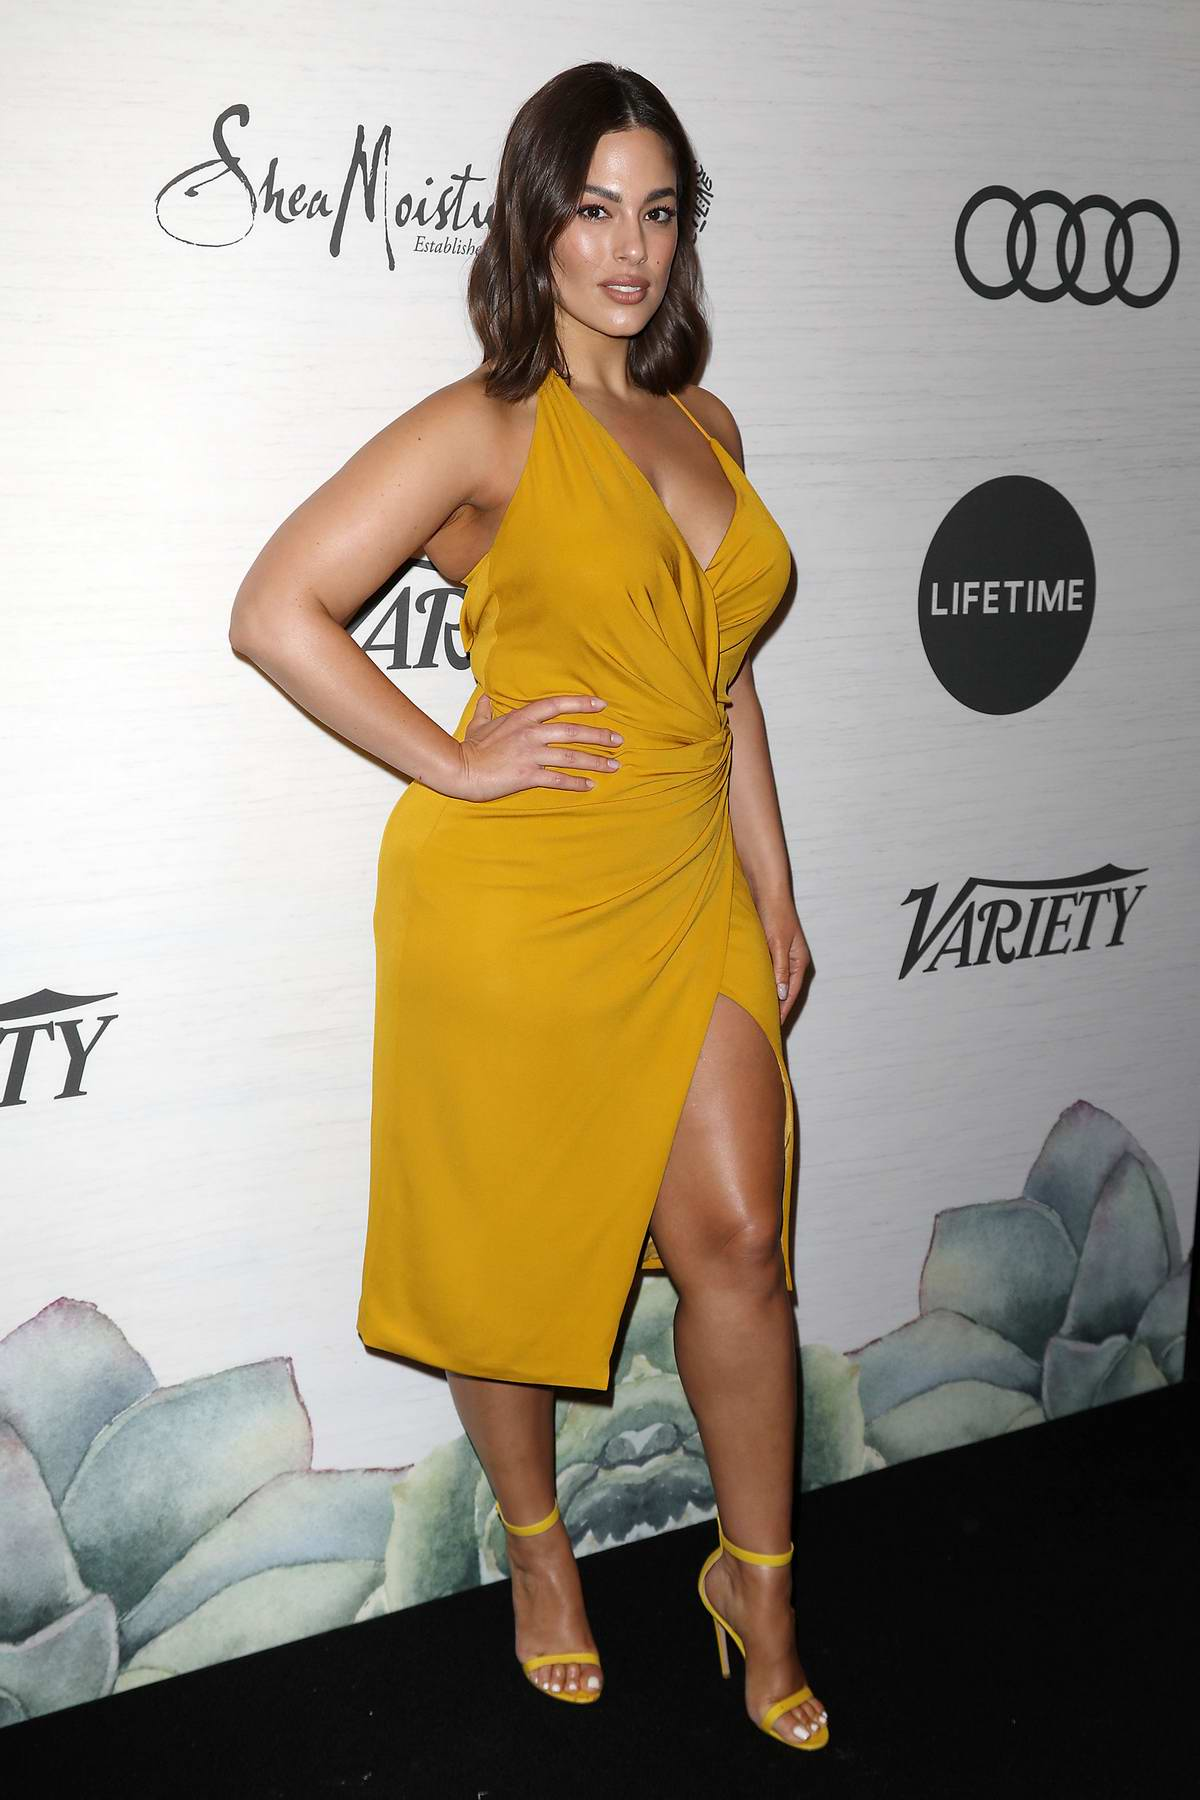 Ashley Graham attends the 2019 Variety's Power of Women Presented by Lifetime in New York City